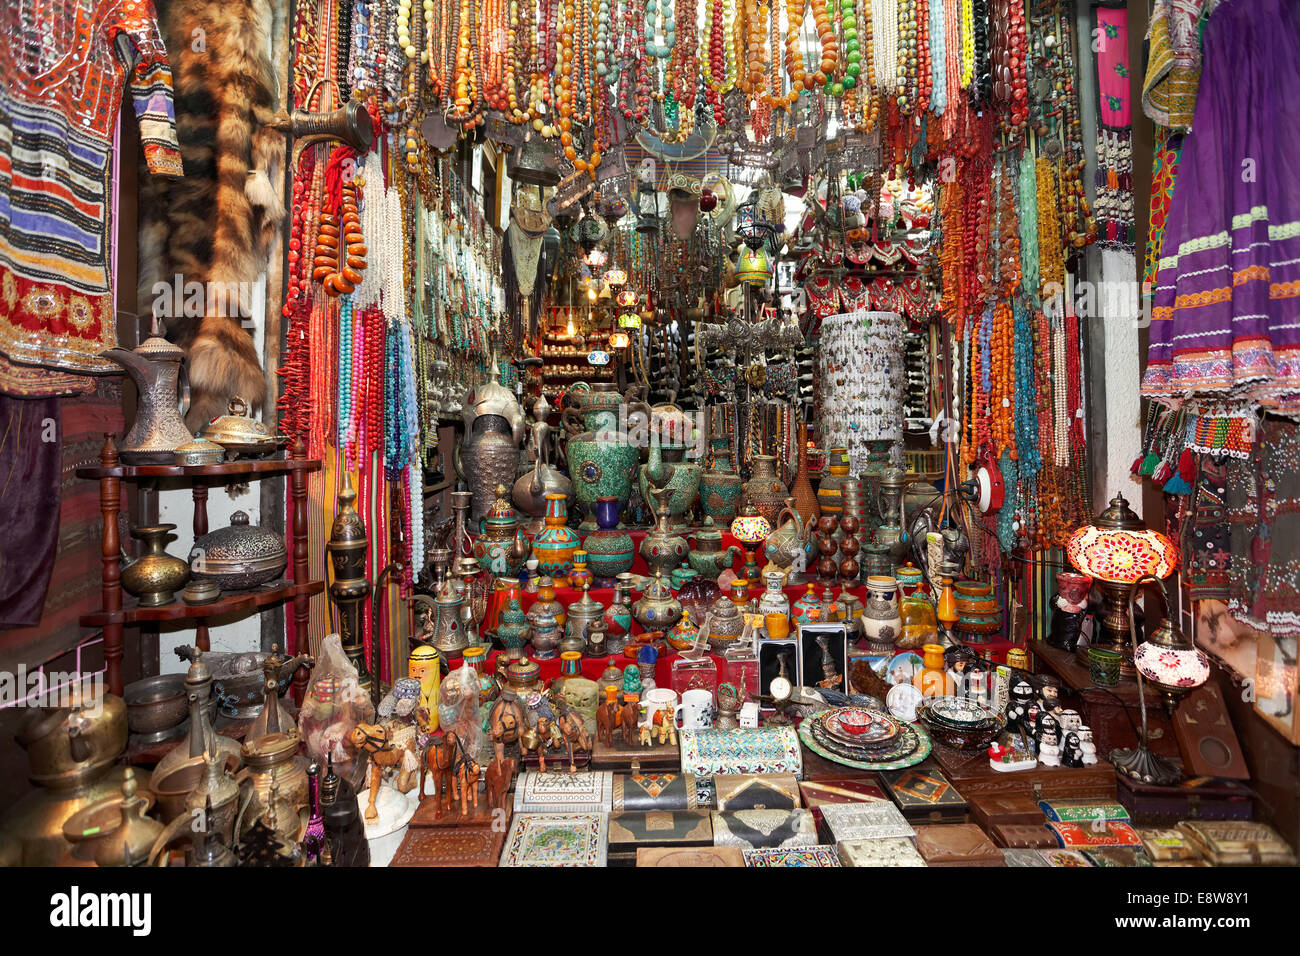 Colourful wares and souvenirs in a shop in the Muttrah Souq market, Muttrah, Muscat, Oman - Stock Image